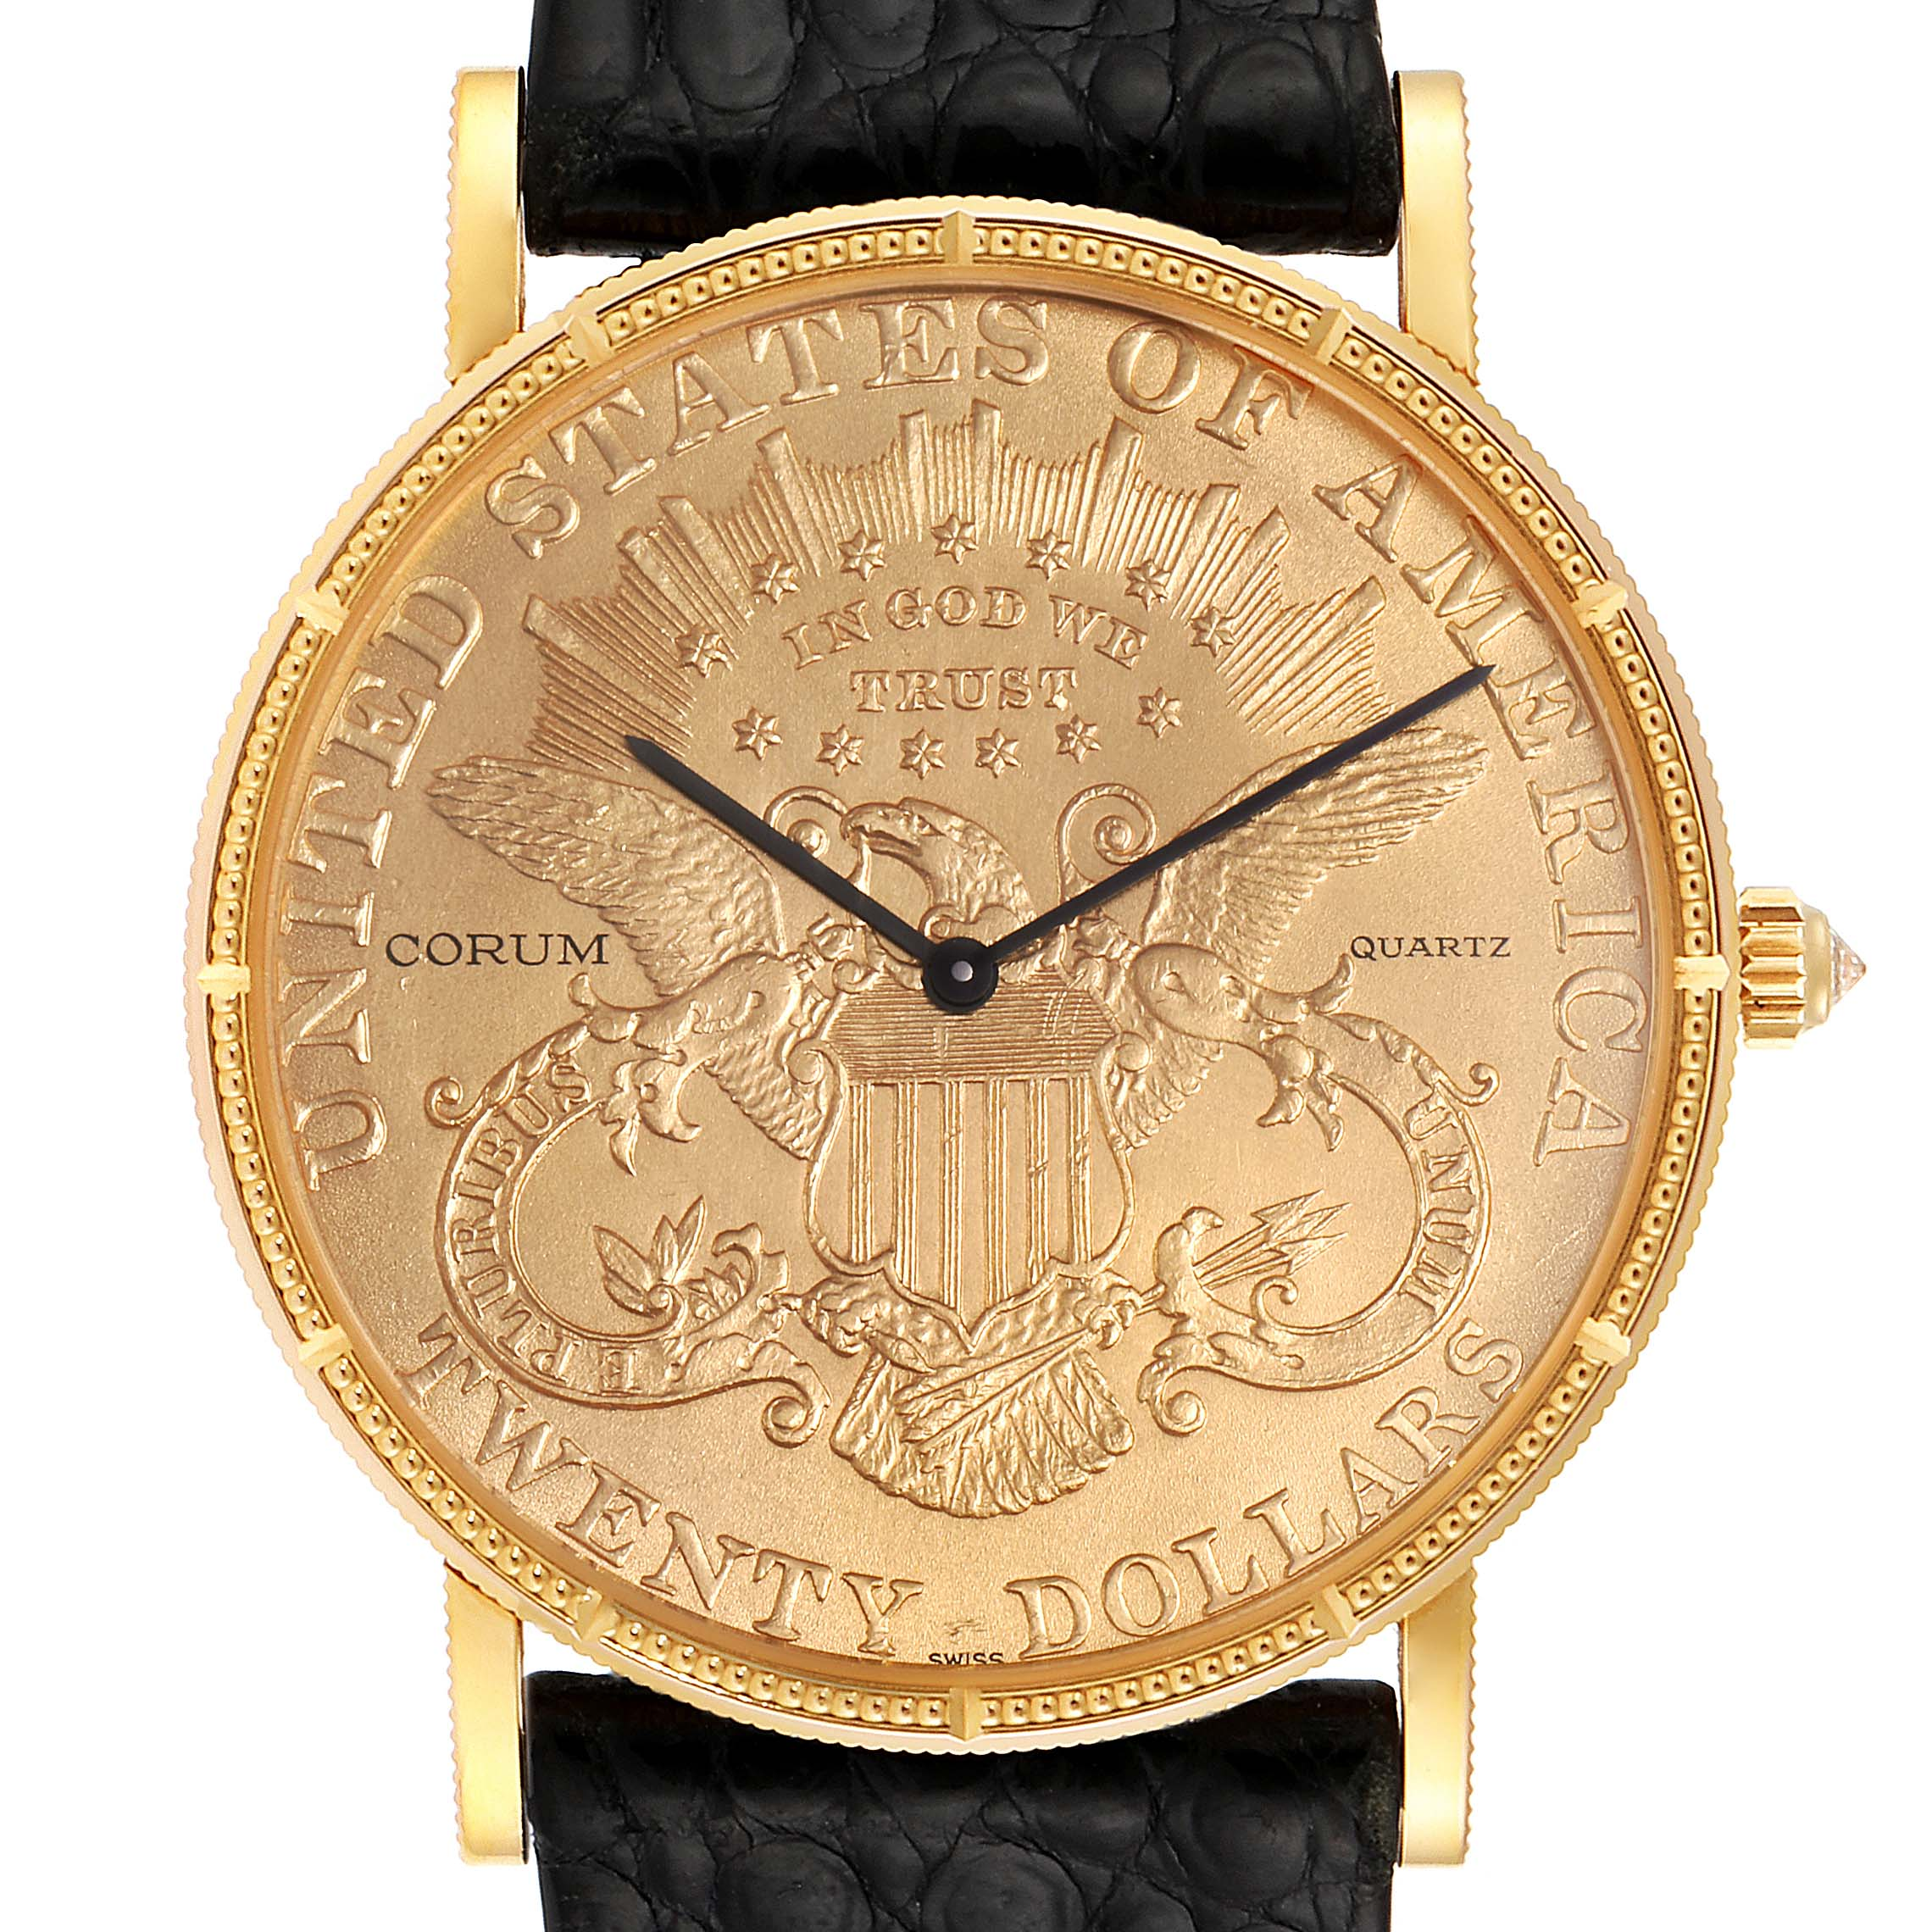 Corum 20 Dollars Double Eagle Yellow Gold Coin Year 1896 Mens Watch